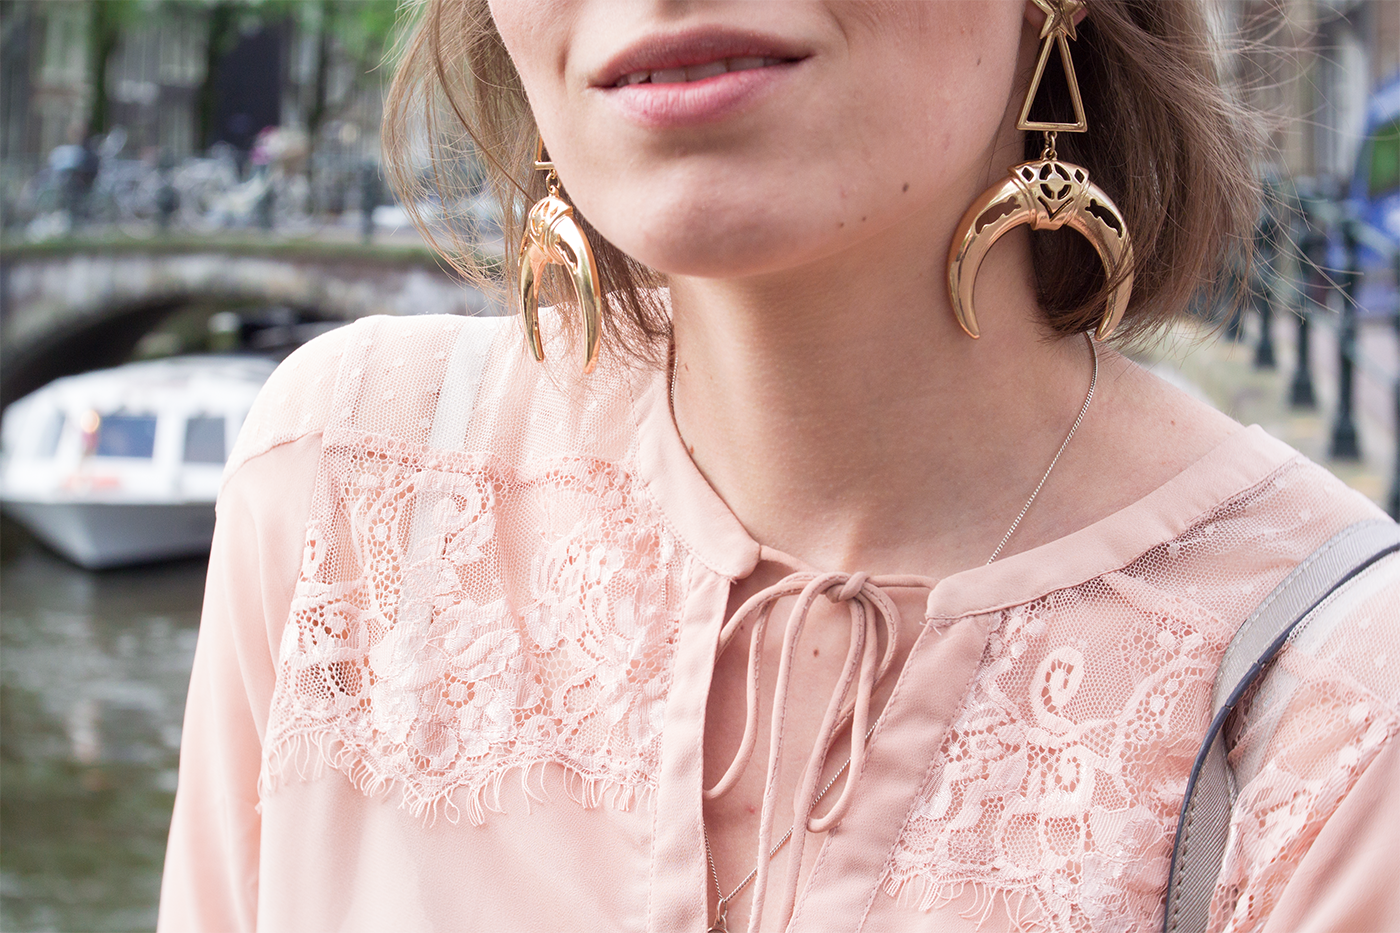 hm-moon-triangle-gold-earrings-blogger-outfit-amsterdam